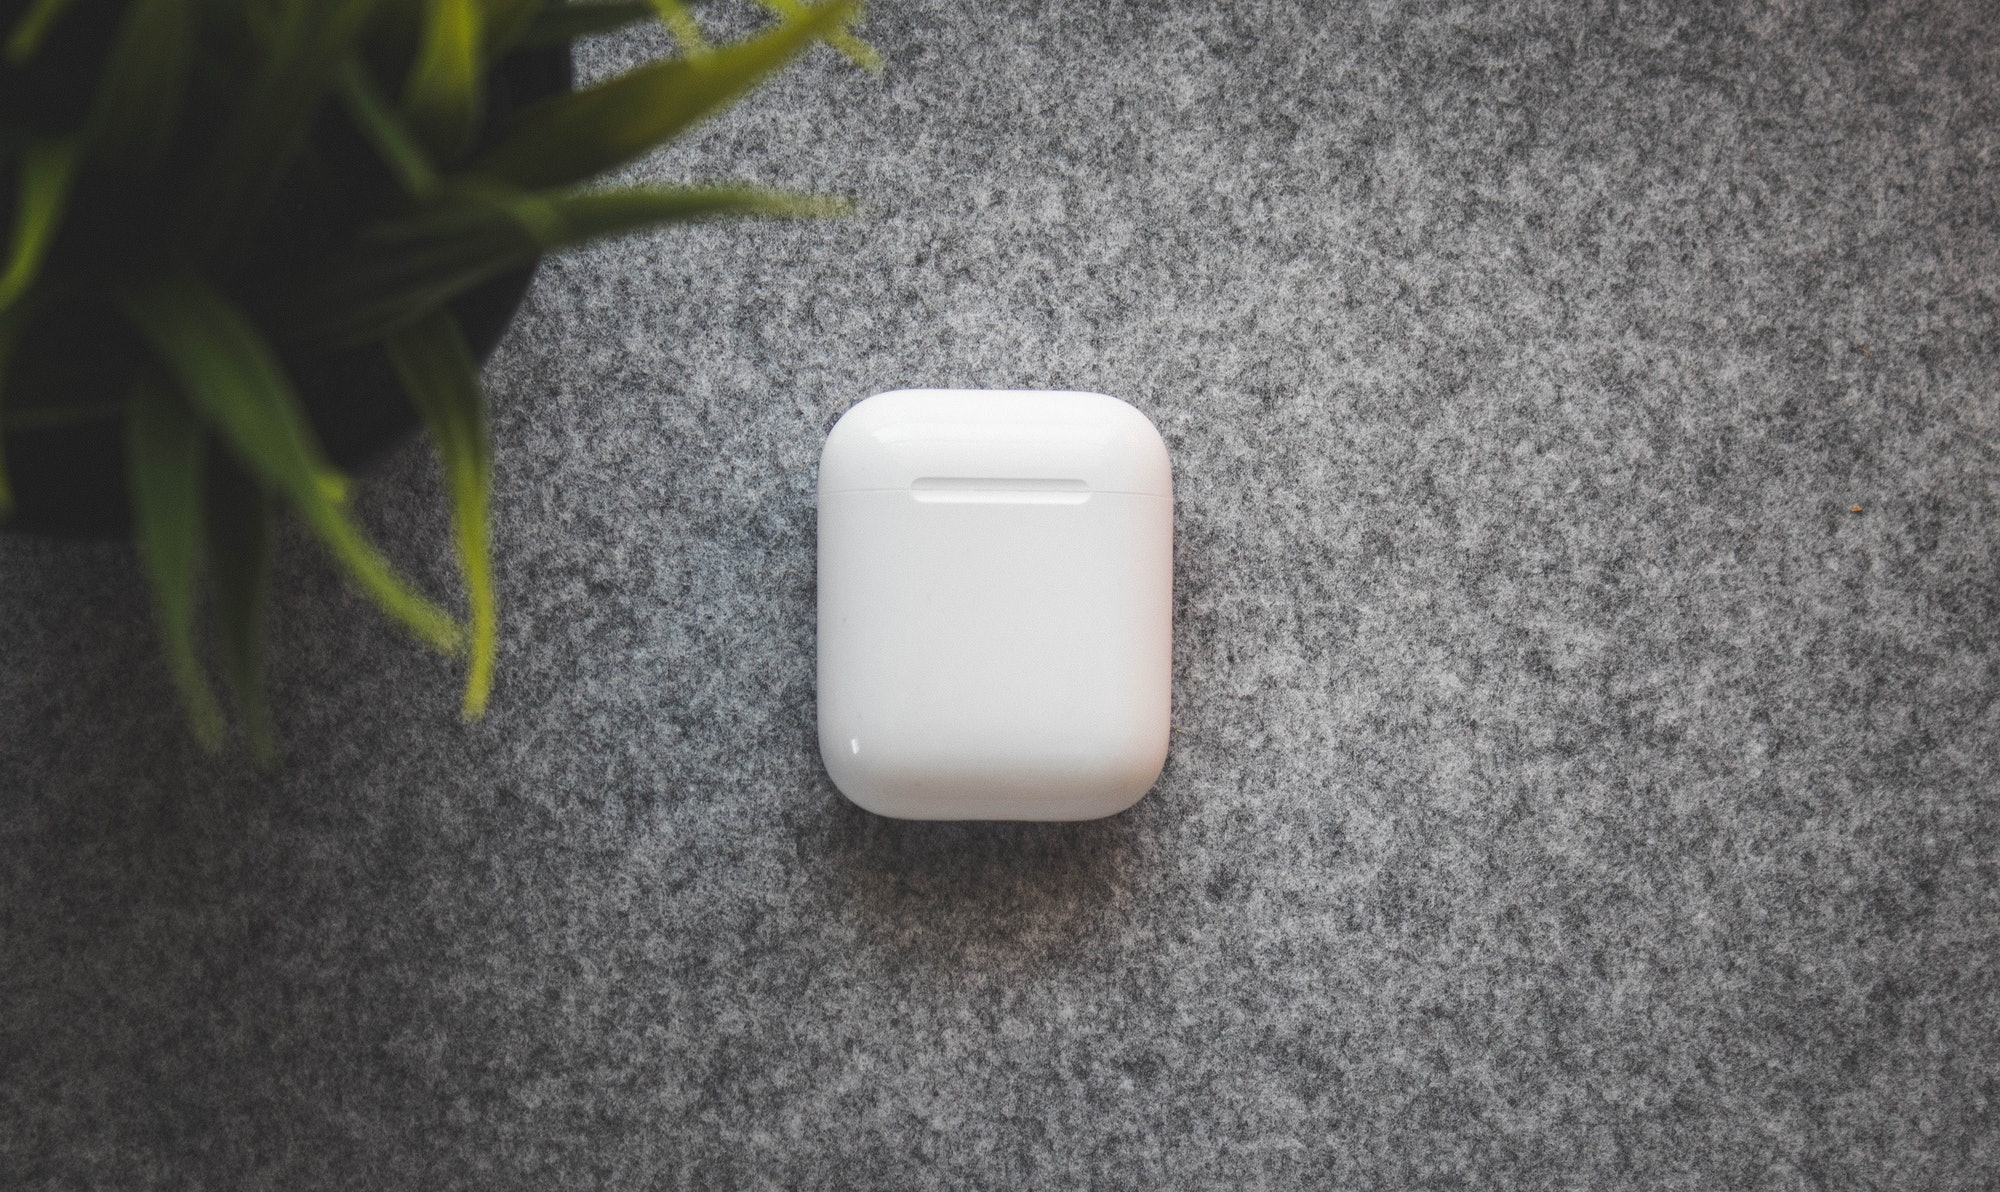 The AirPods come in a small charging case.